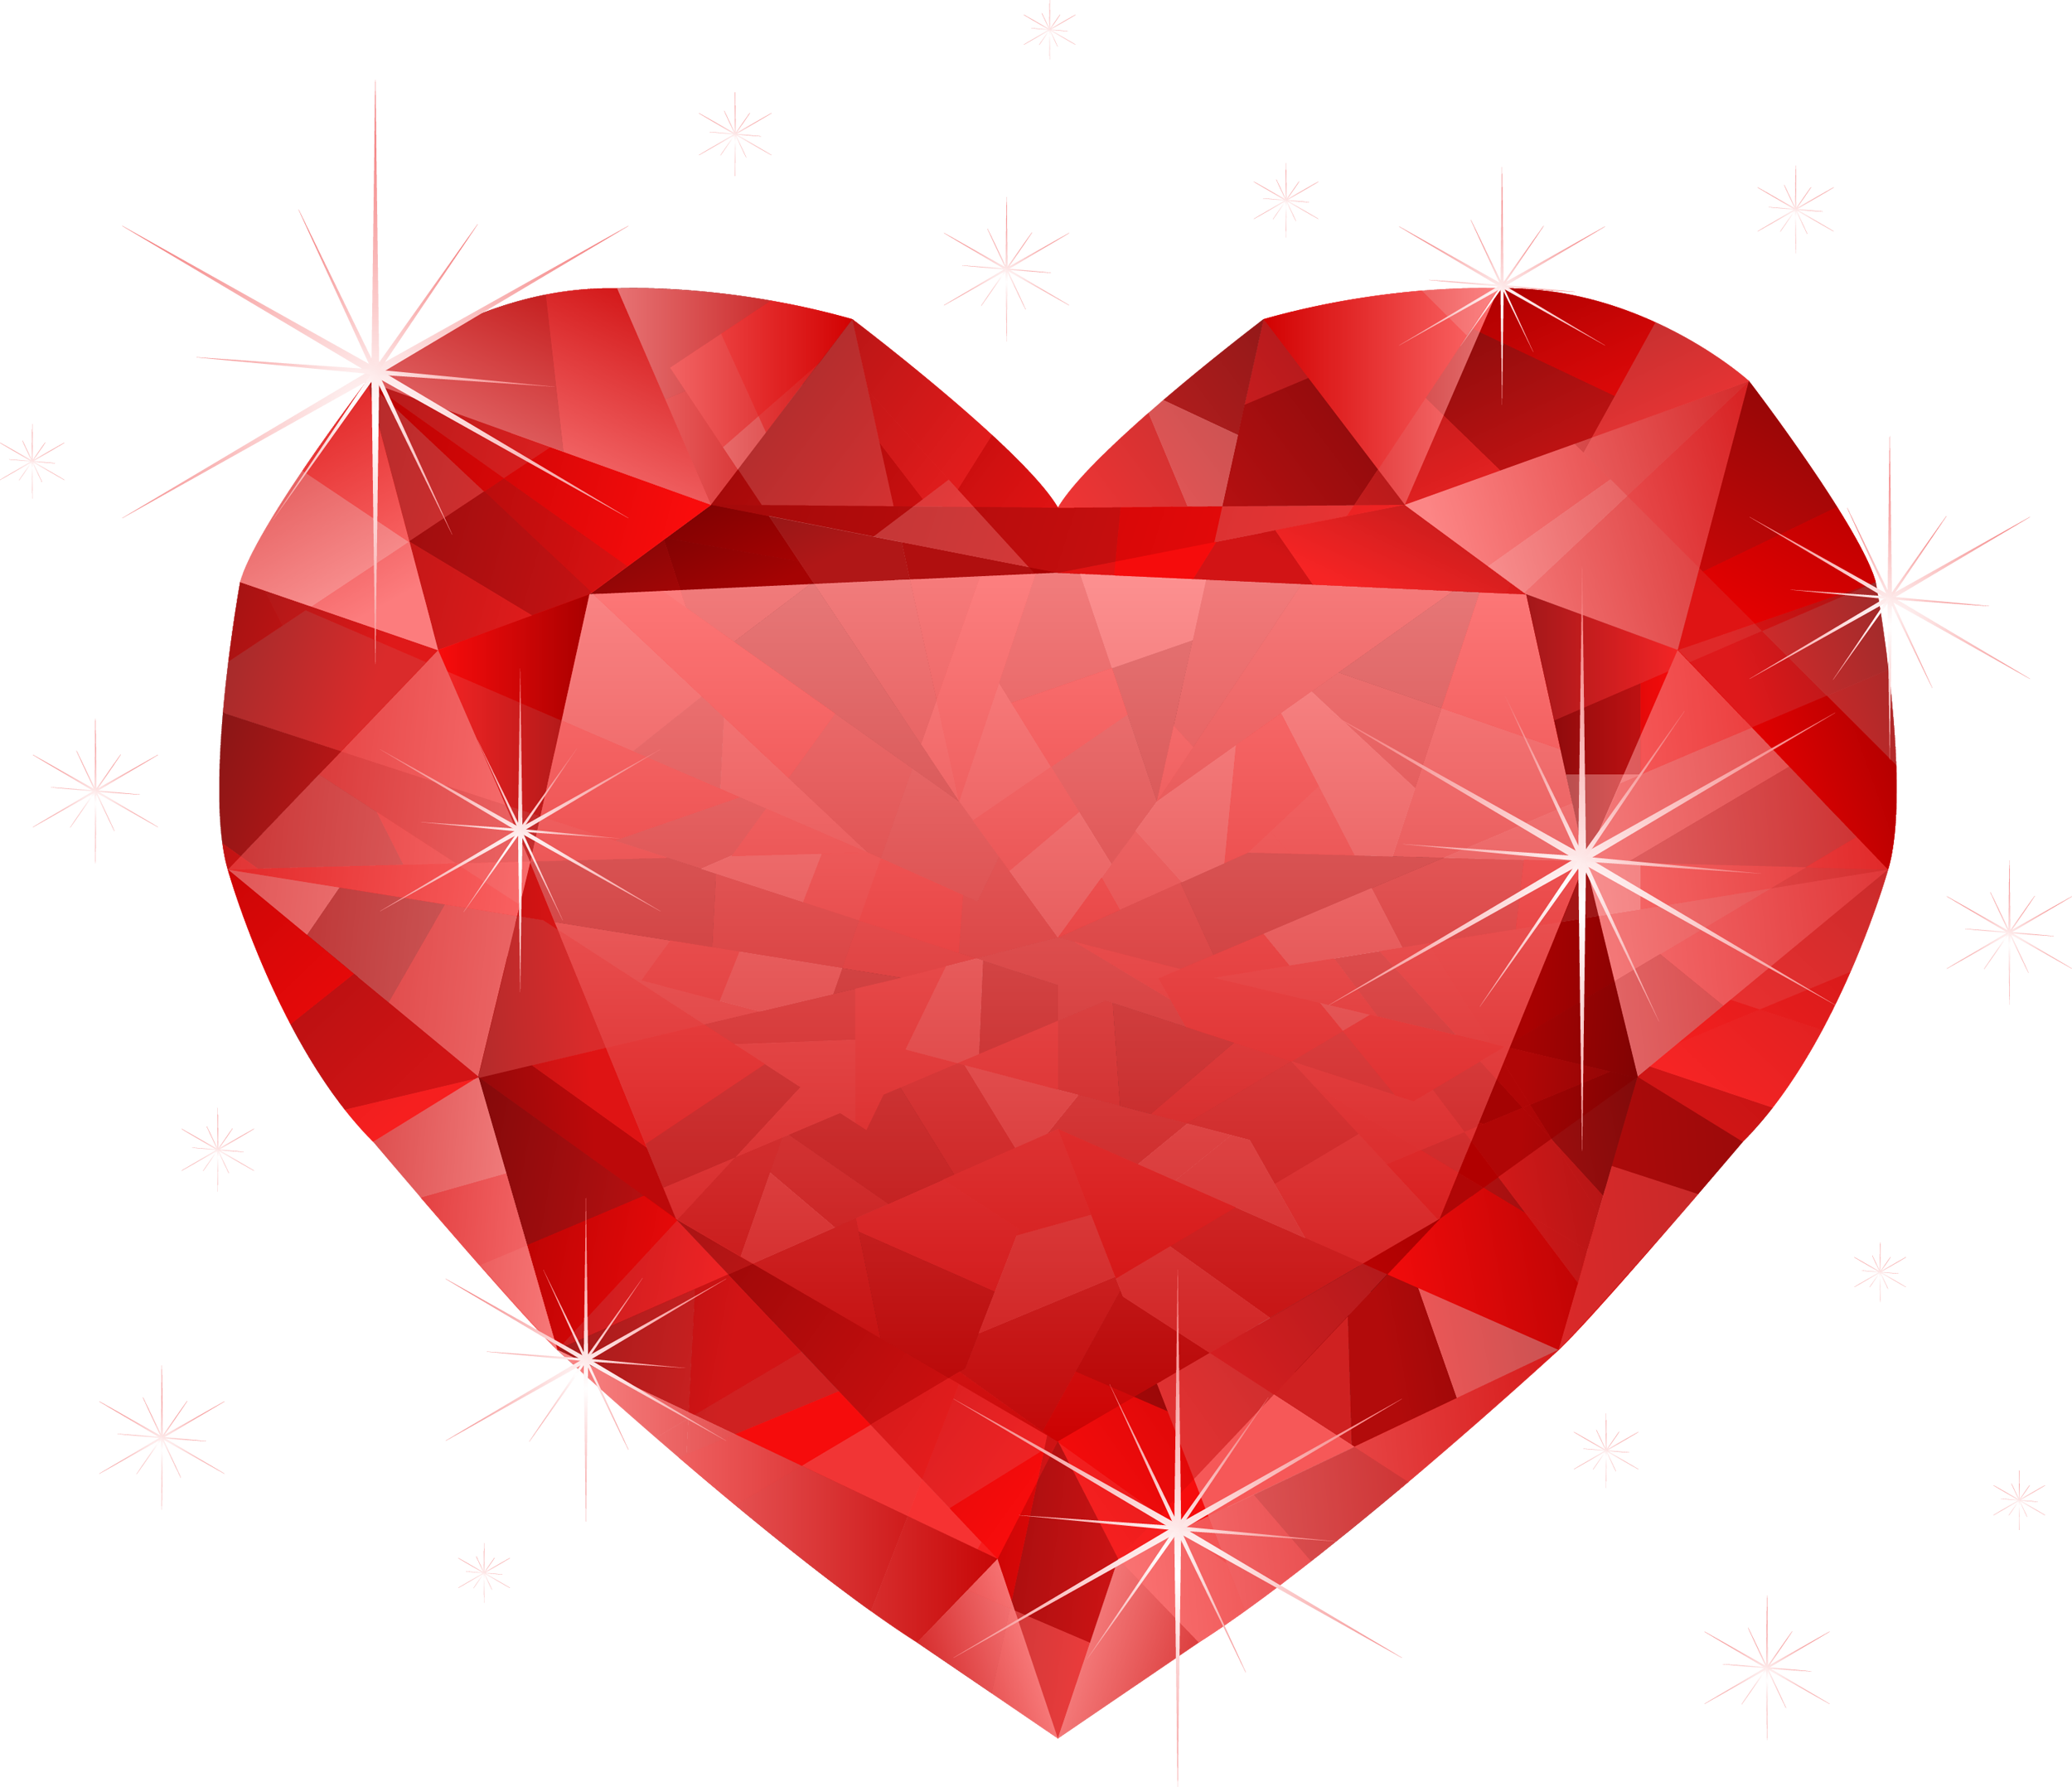 jewel of love9d28b6097f683920044f716c25fd0a22.png